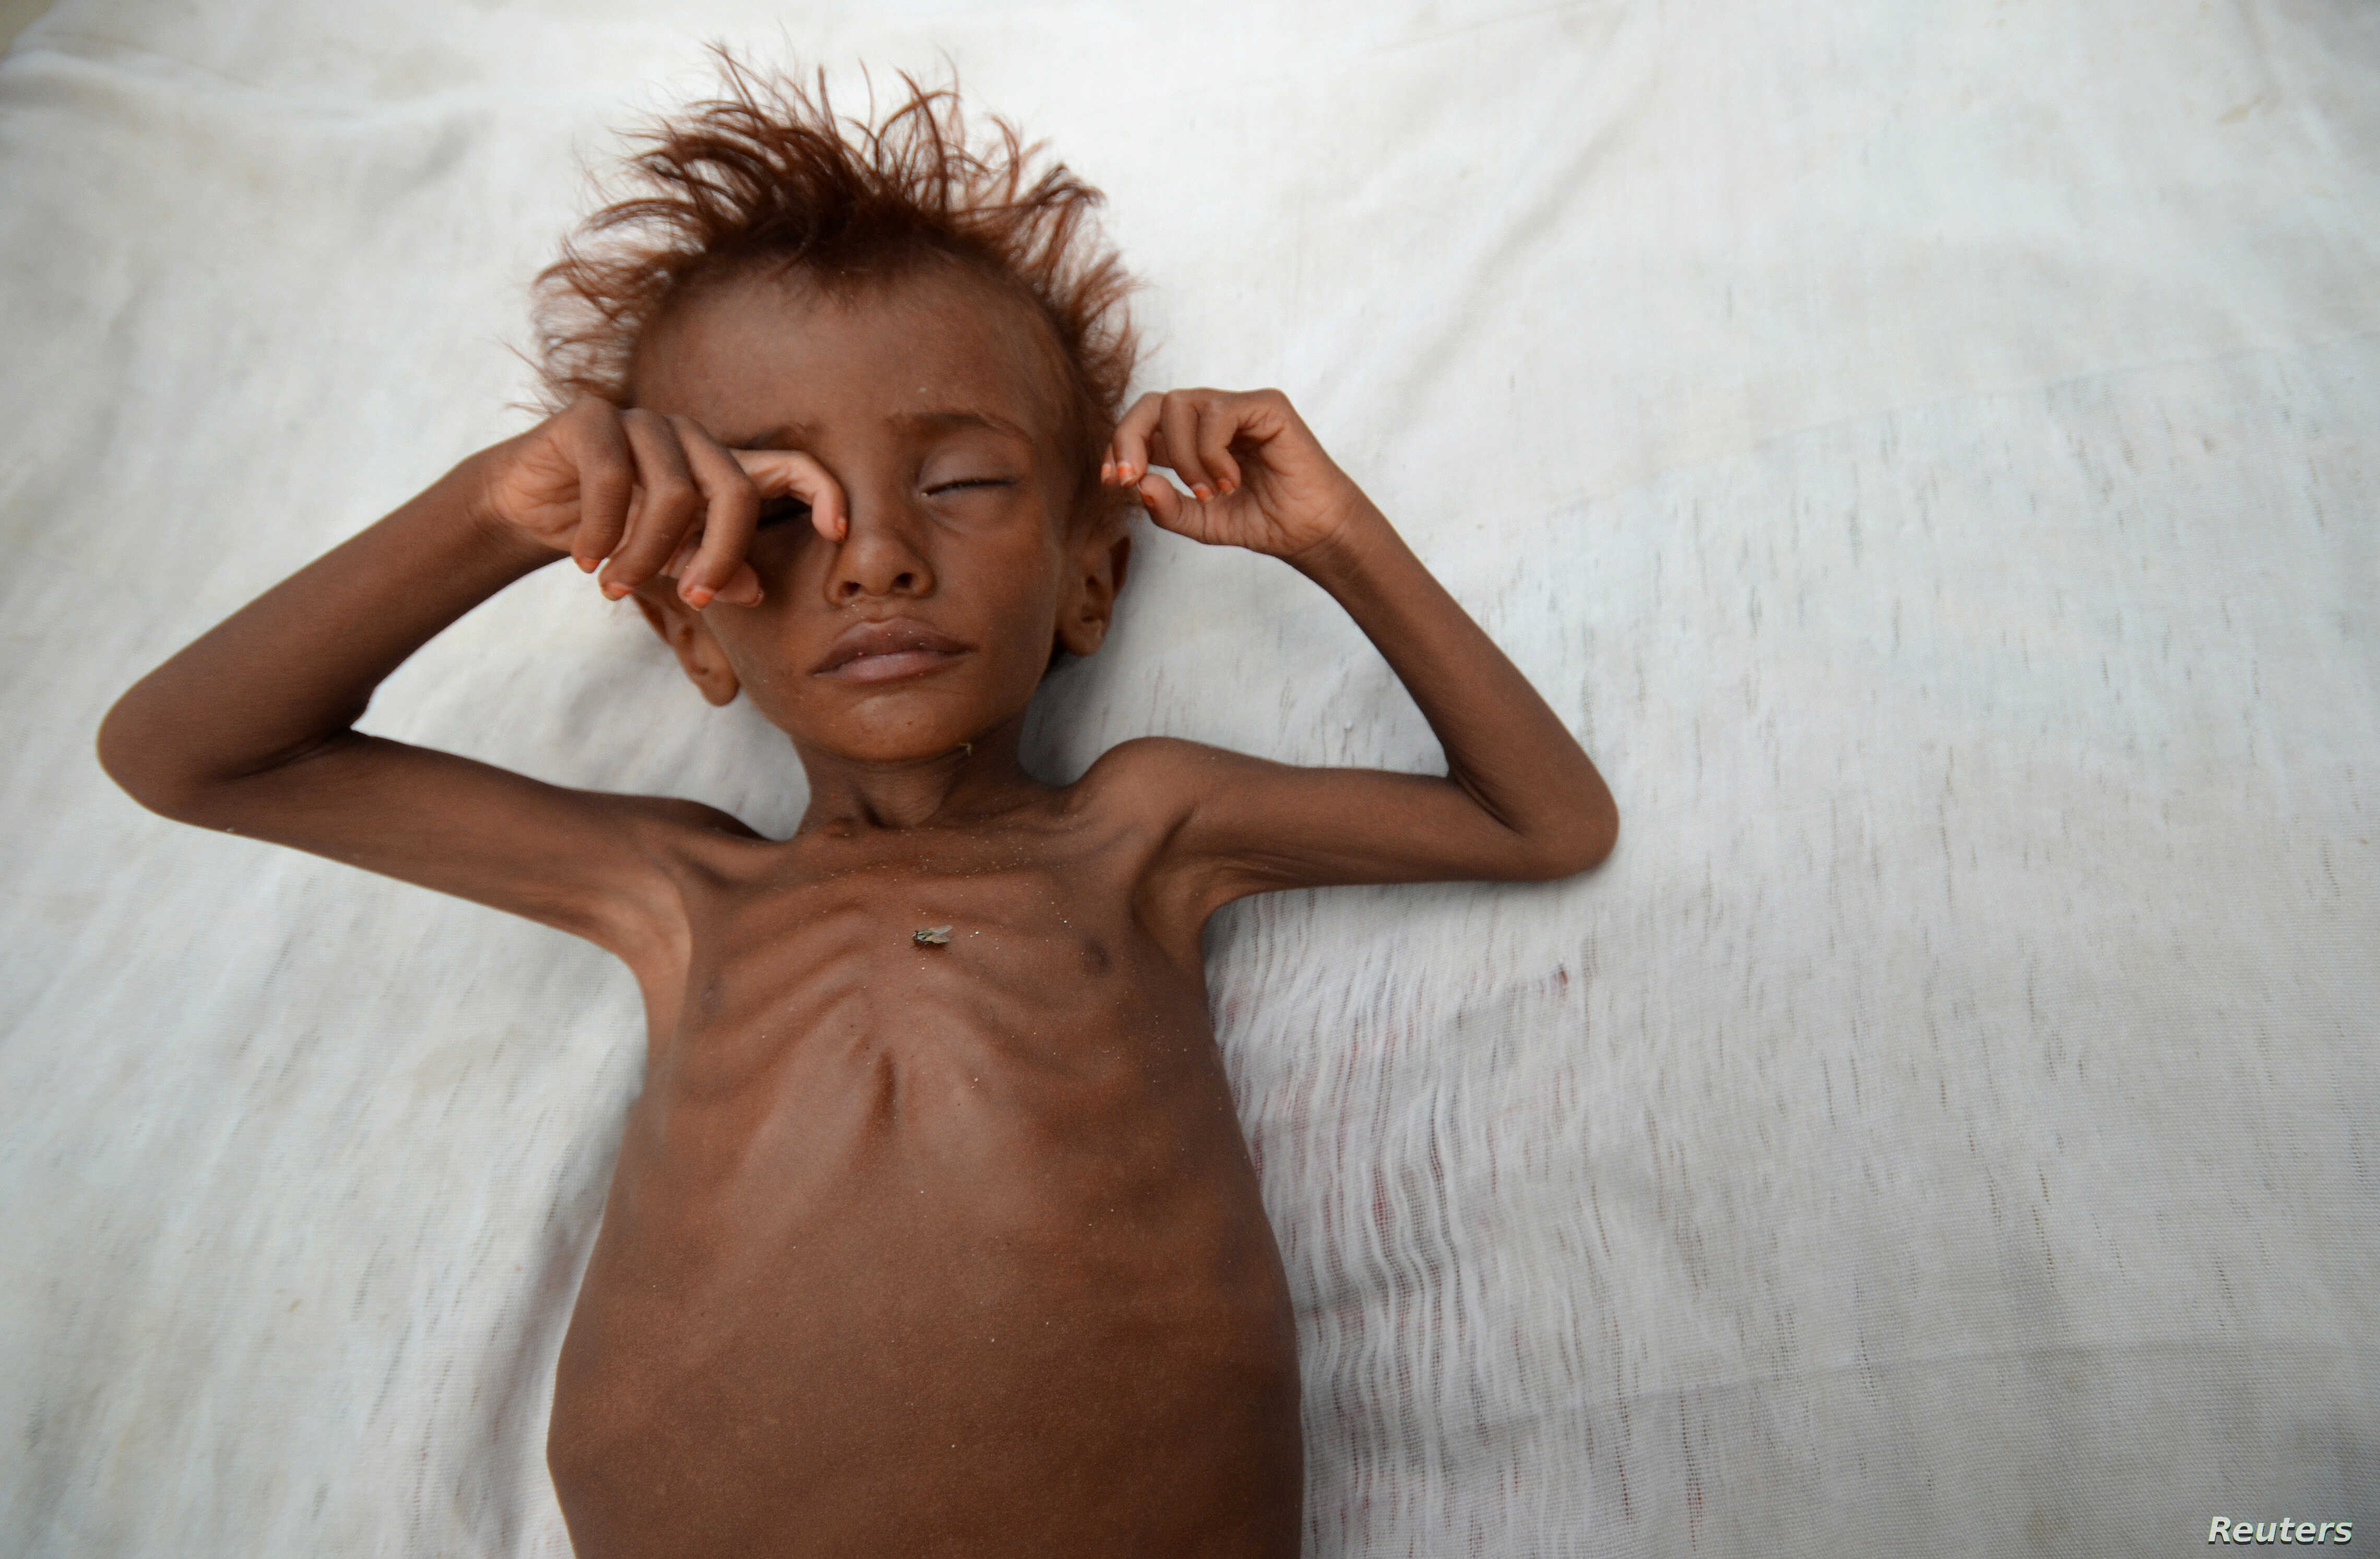 A malnourished boy lies on a bed outside his family's hut in al-Tuhaita district of the Red Sea province of Hudaydah, Yemen September 26, 2016.